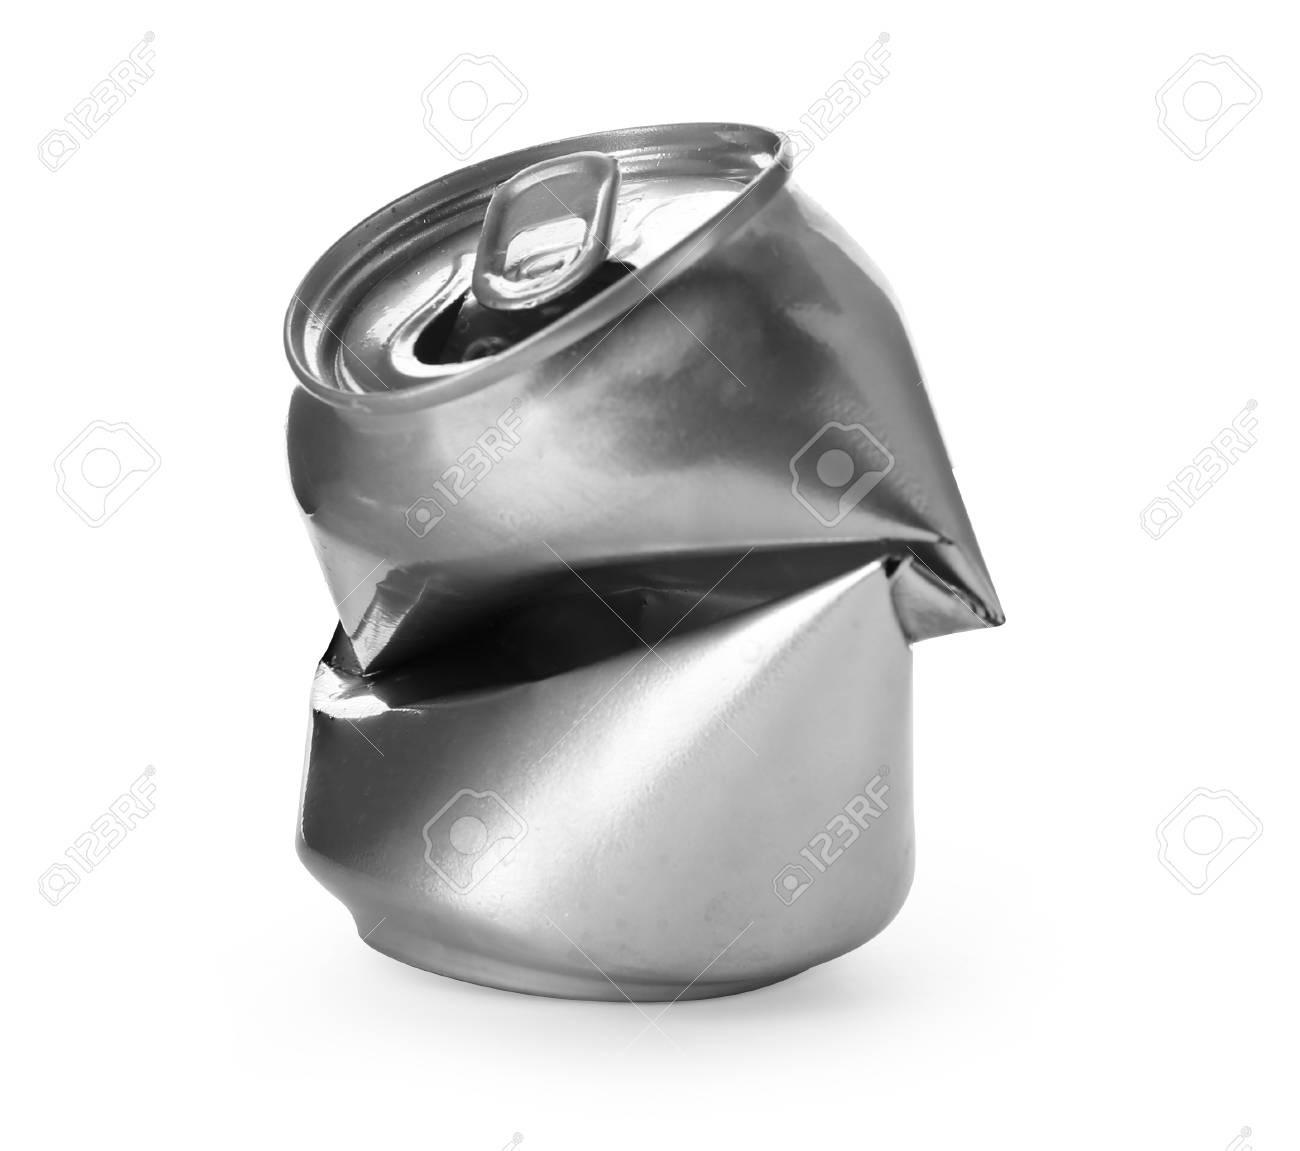 Empty crumpled aluminum can on white background. Metal waste recycling - 106156807